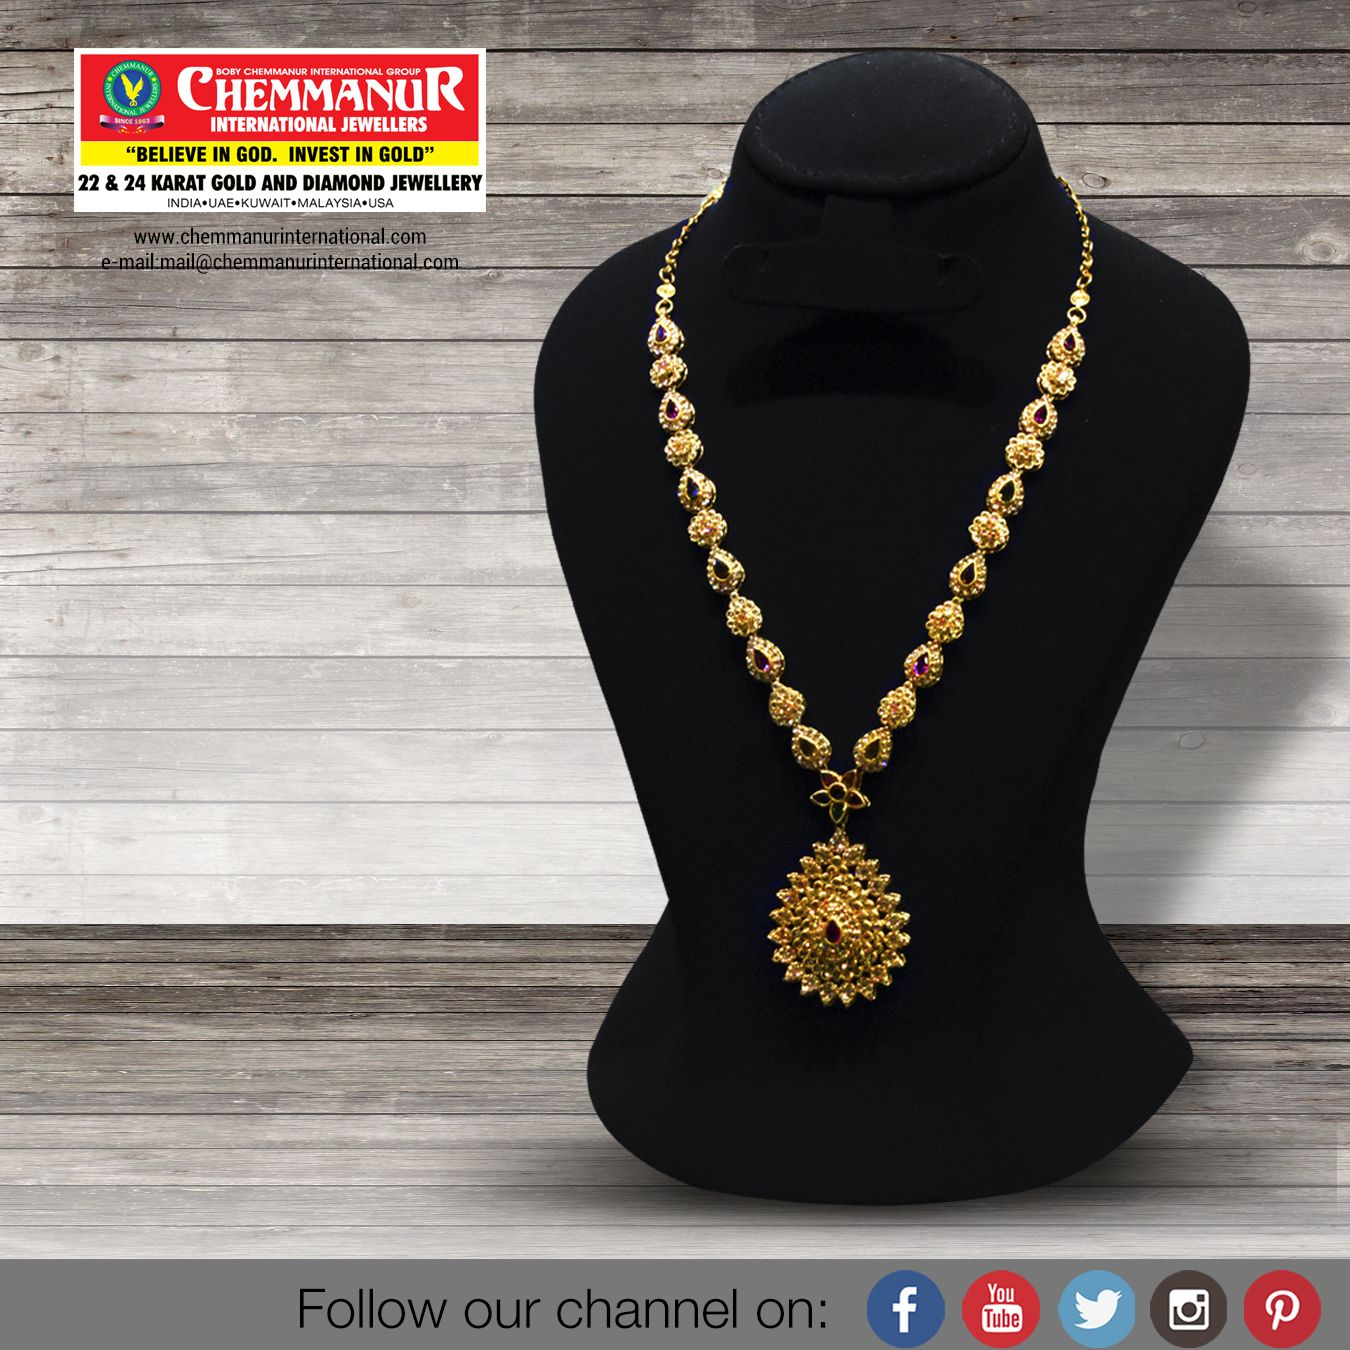 Chemmanur International Jewellers Tollfree Number 1800 3000 2916 Join Whatsapp 9562032223 Beaded Necklace Statement Necklace Diamond Jewelry